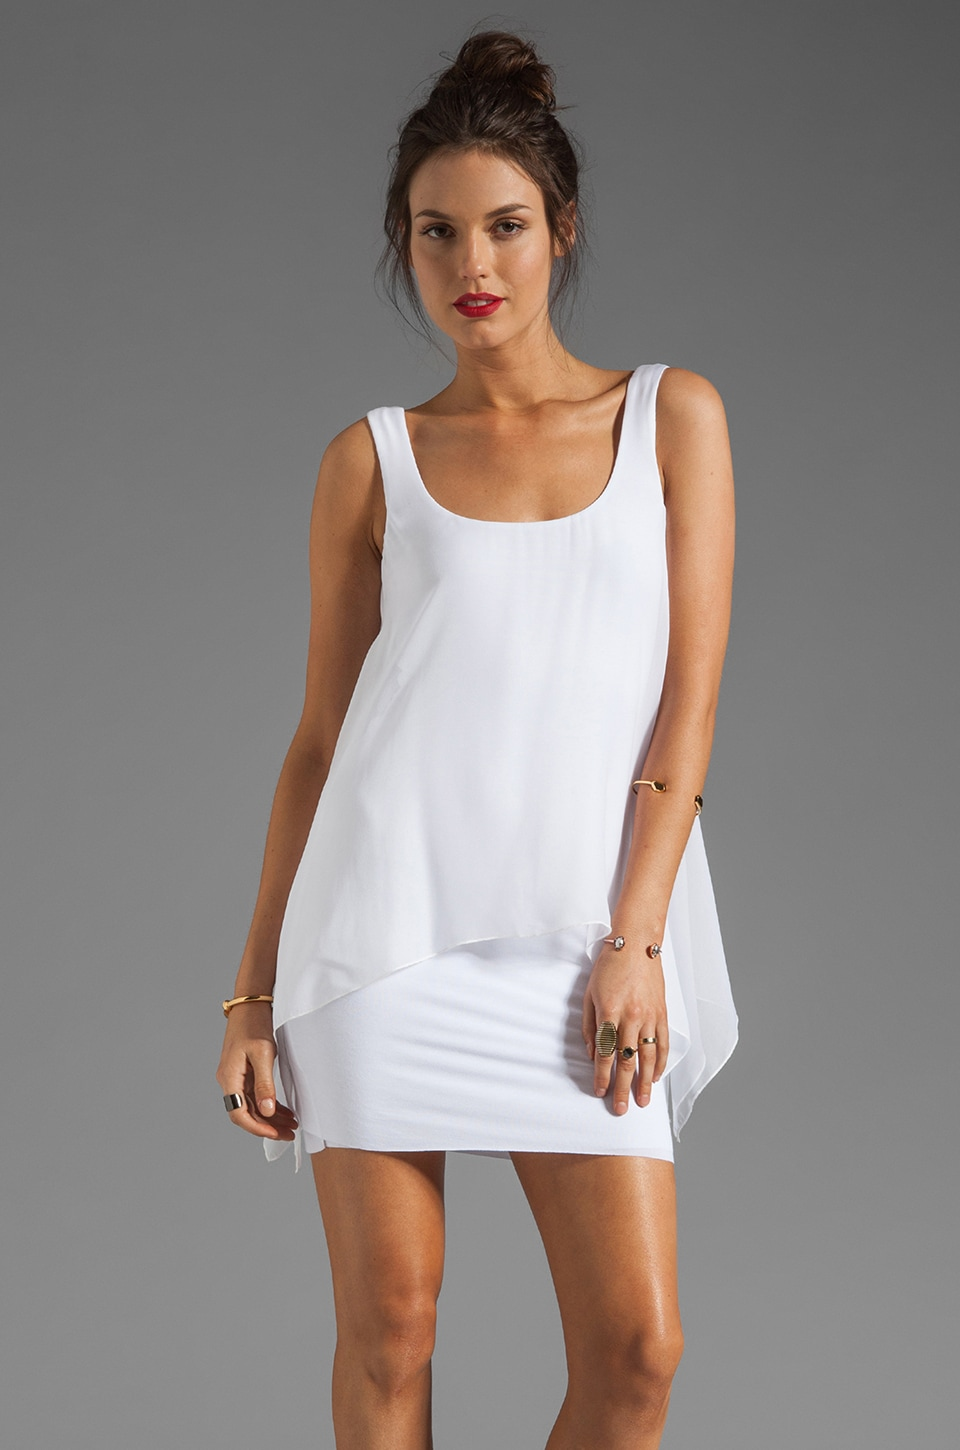 Bailey 44 Manta Ray Dress in White